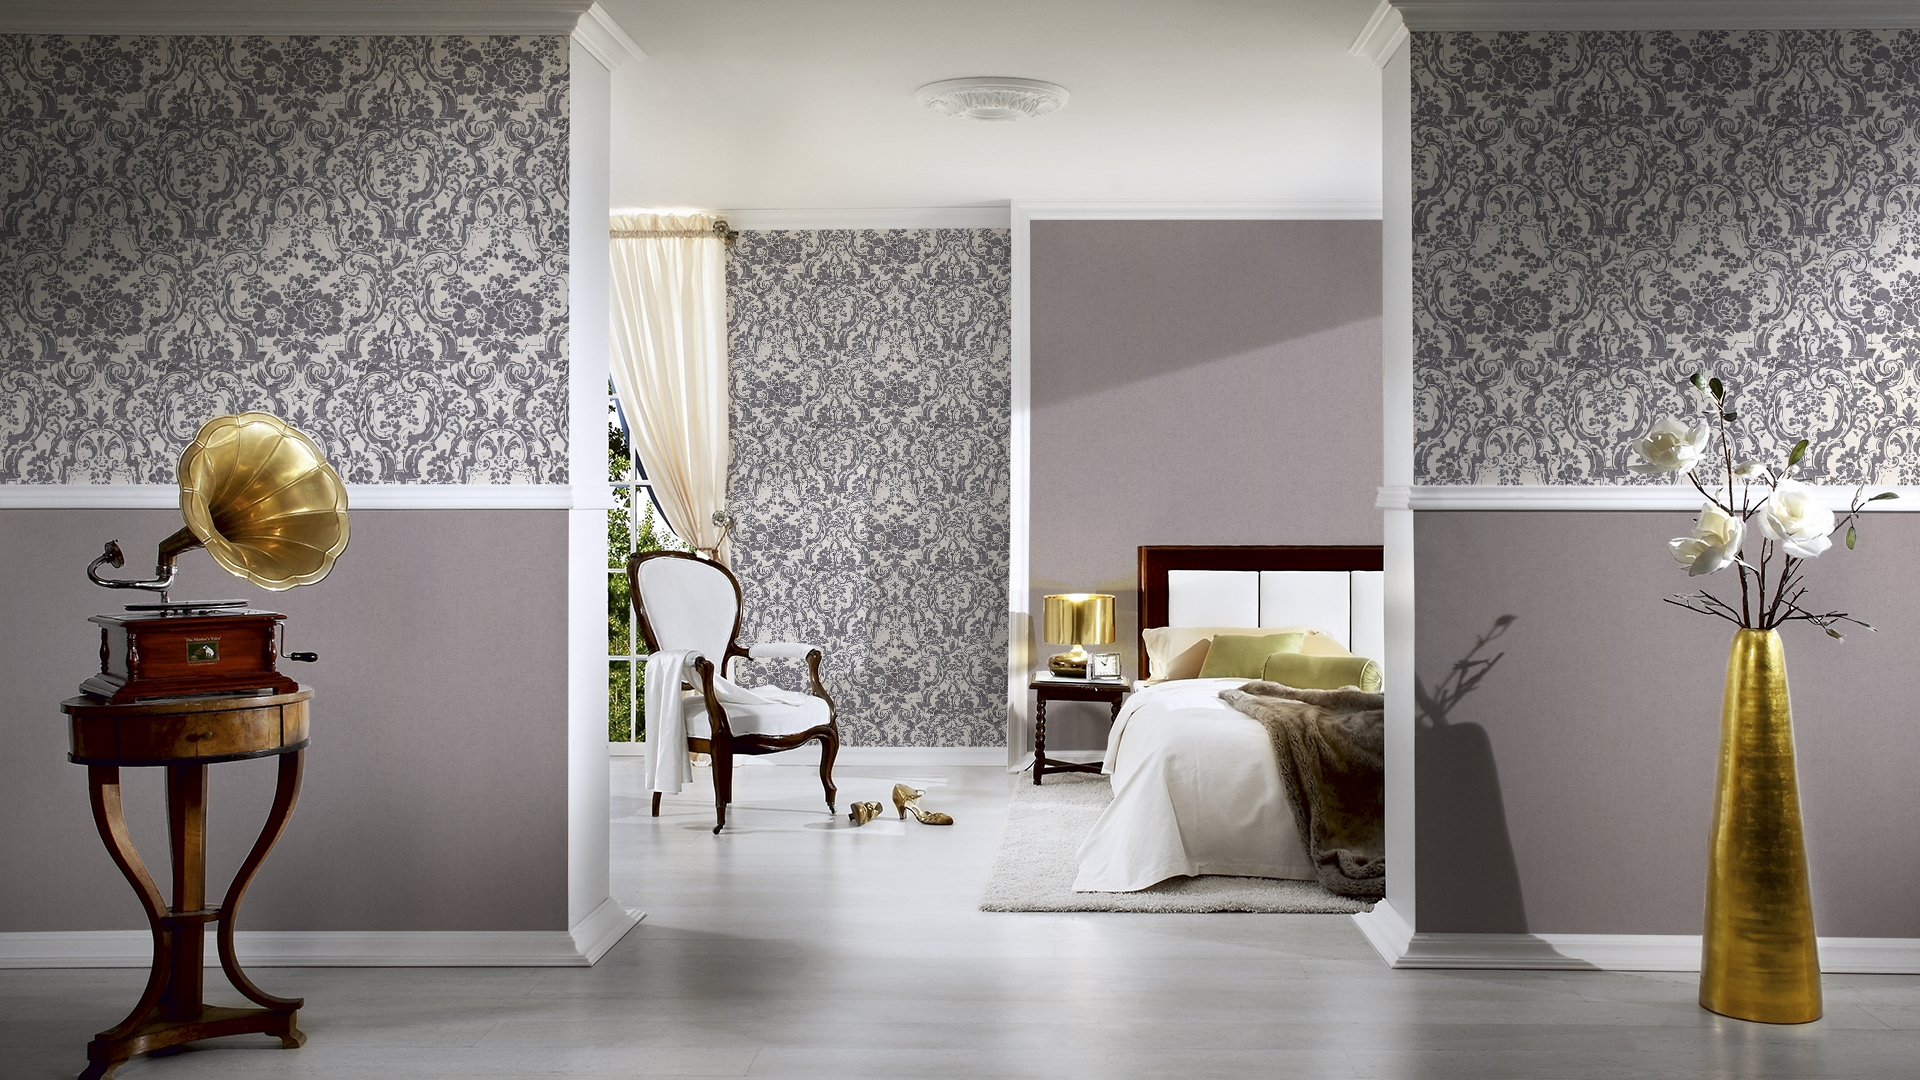 livingwalls uni tapete moments vlies grau mit struktur 328356. Black Bedroom Furniture Sets. Home Design Ideas